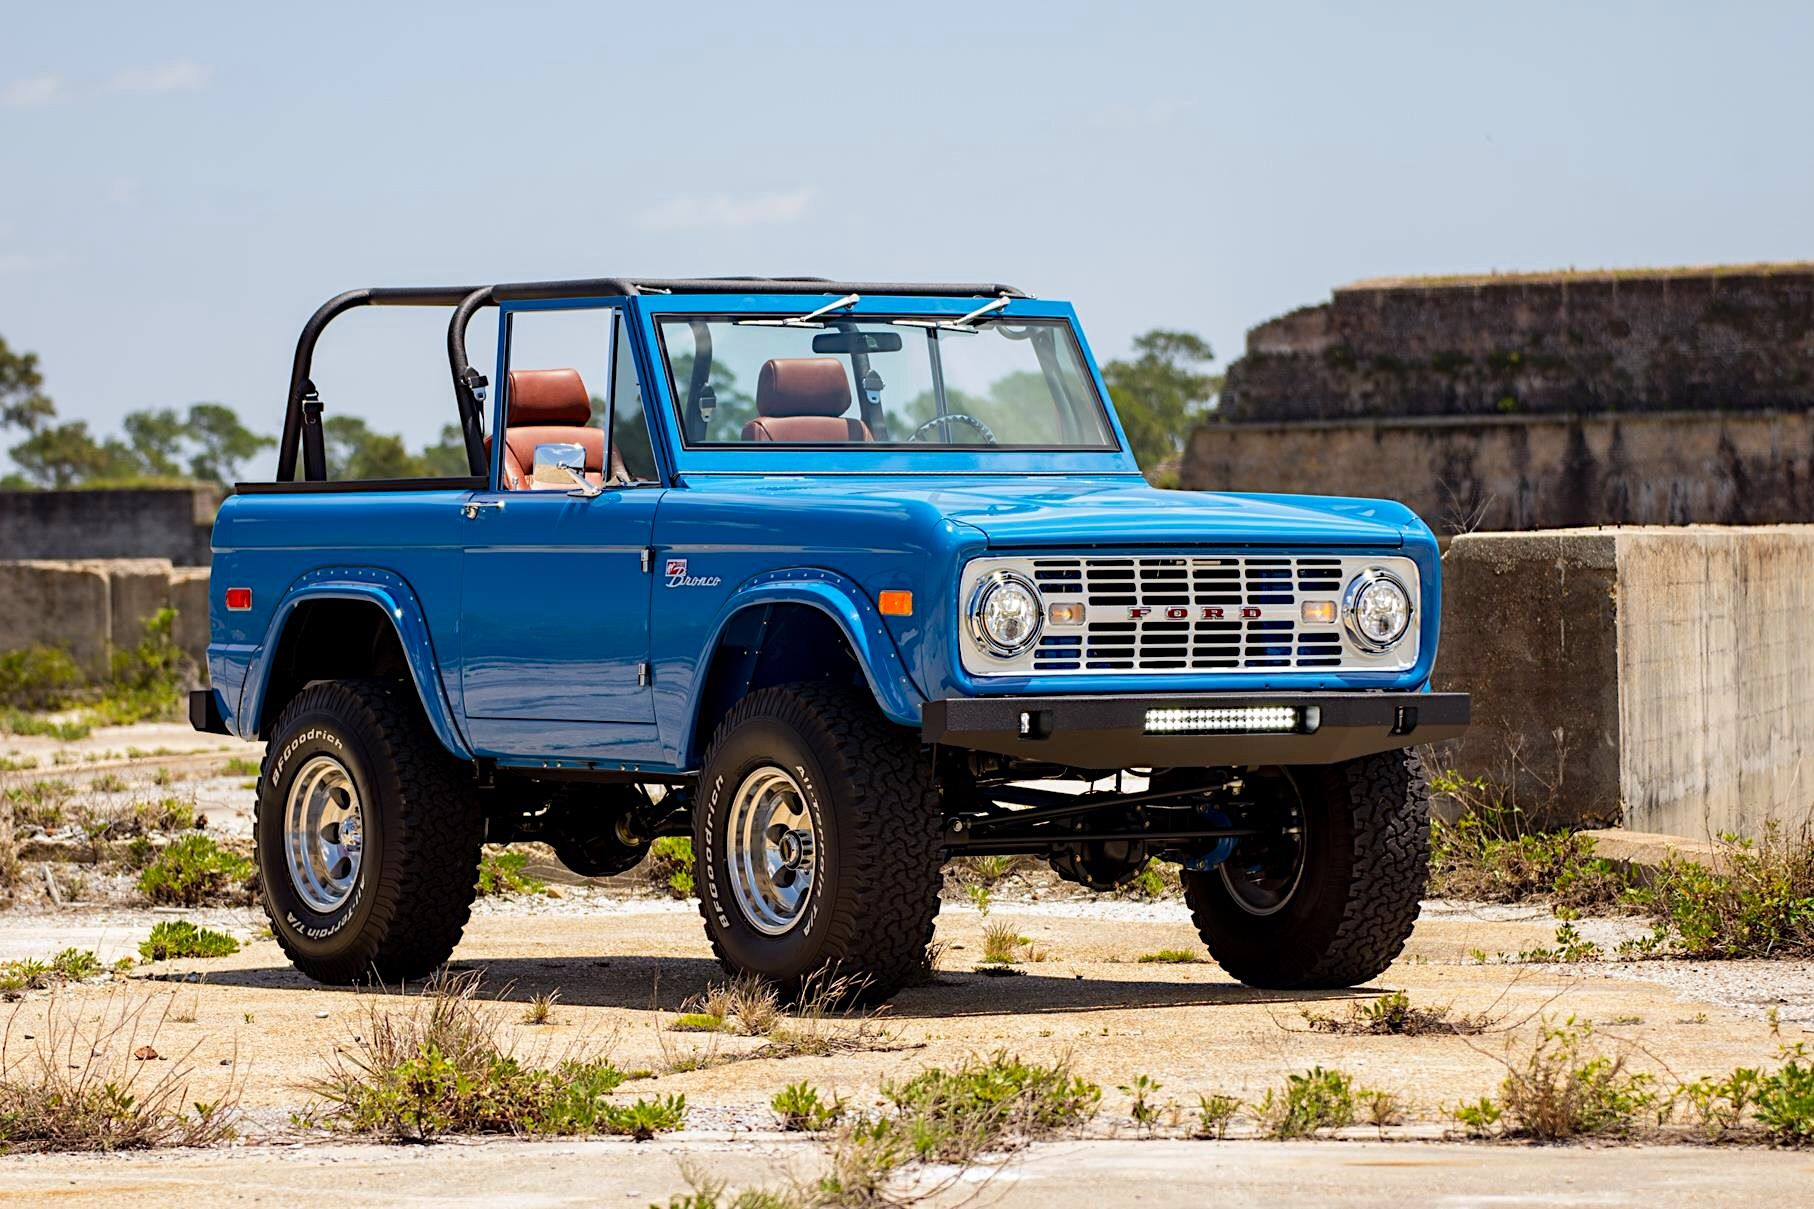 Diesel ford bronco for sale - Fully Restored Bright Blue 76 Ford Bronco